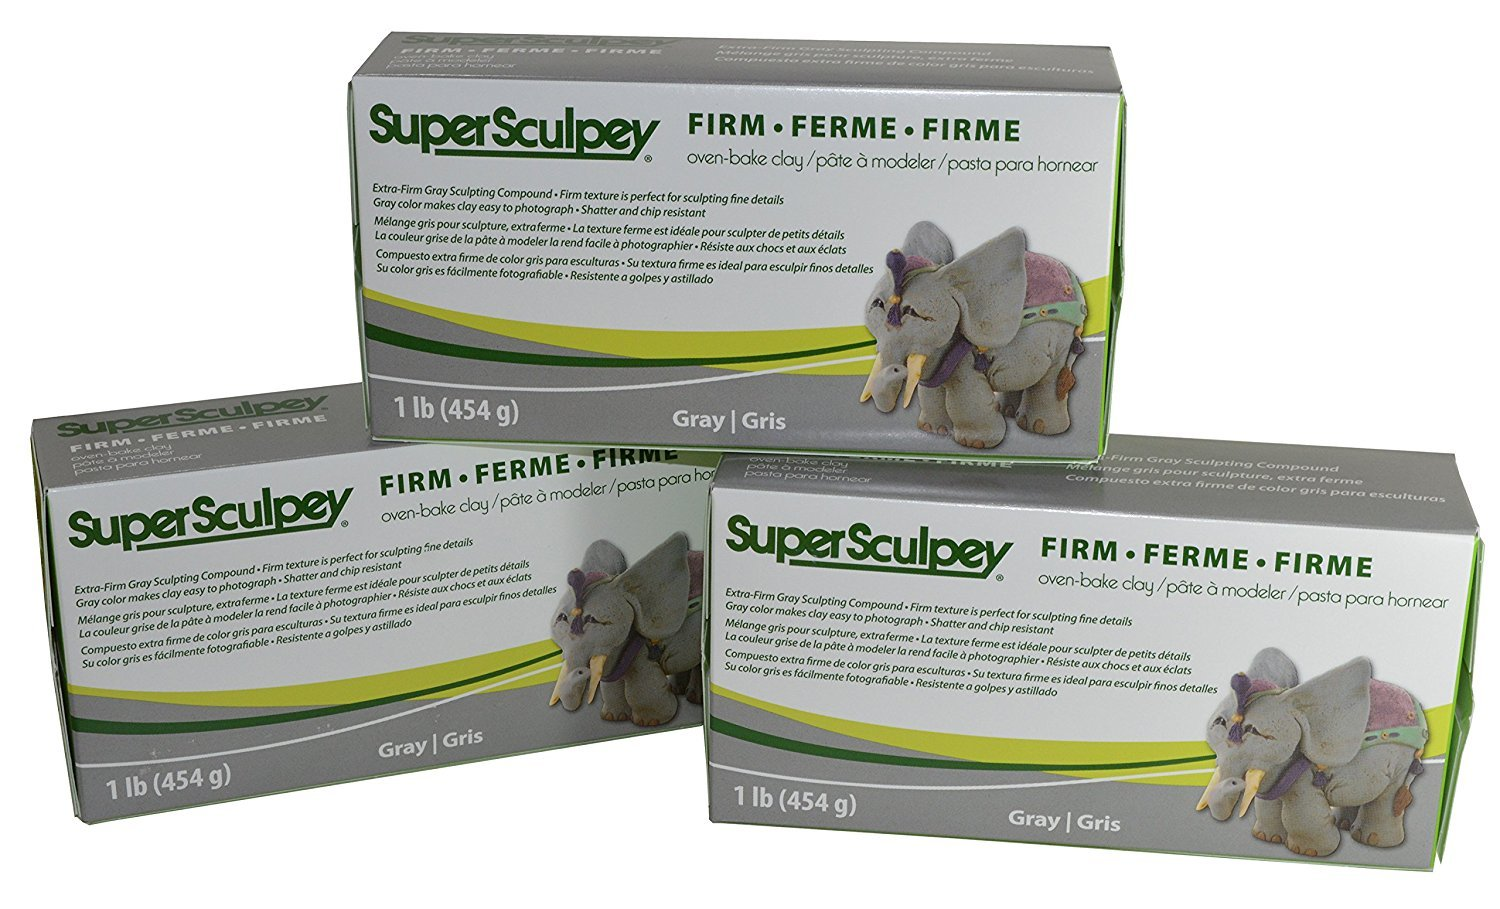 Super Sculpey Sculpting Compound Extra-Firm Gray Oven-Bake Clay - Shatter and Chip Resistant - 1 Lb, Pack of 3 4336898410